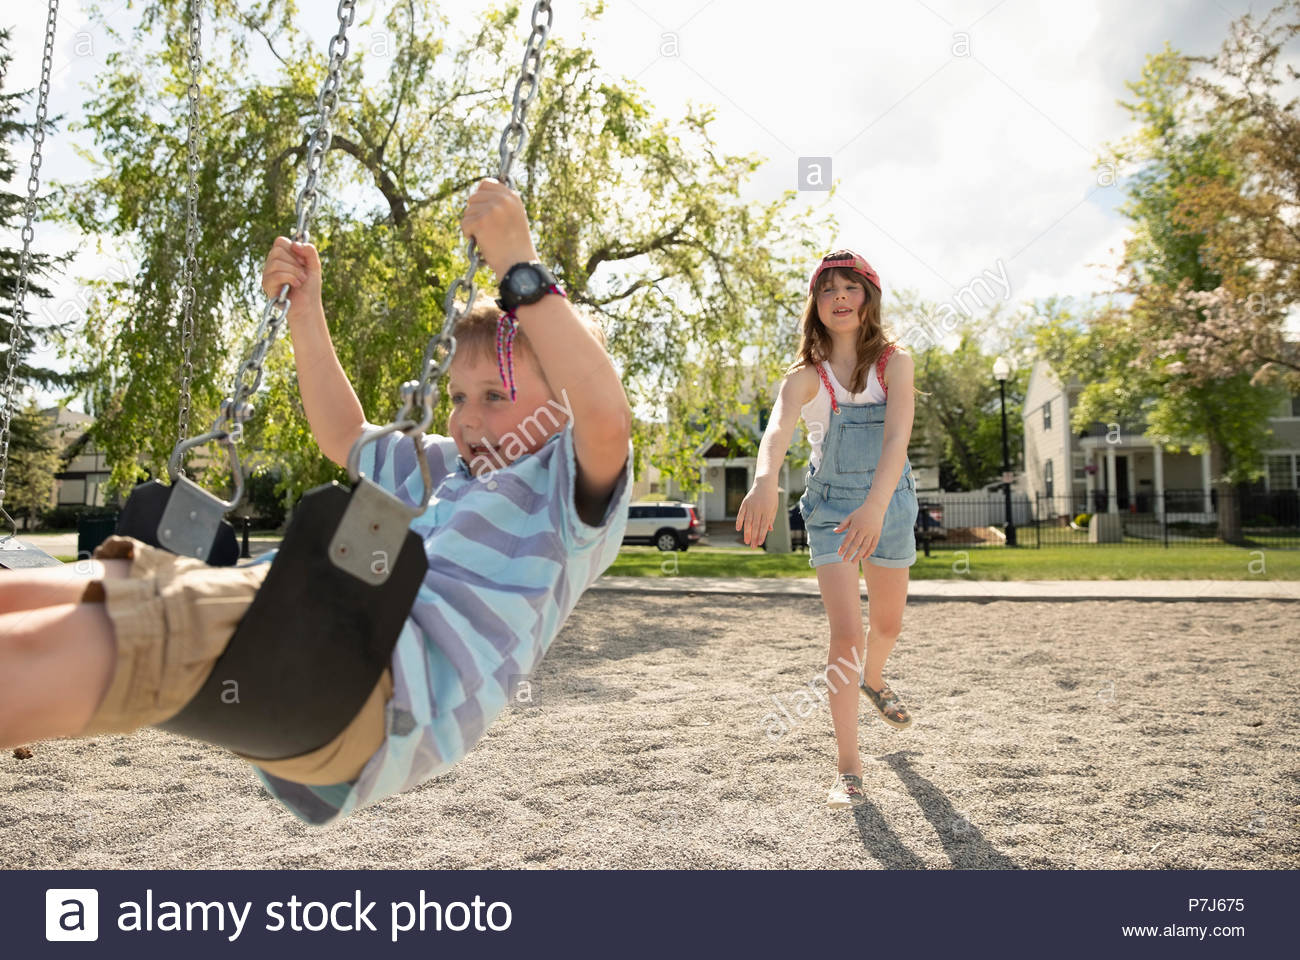 Sister pushing brother on swing at sunny playground - Stock Image